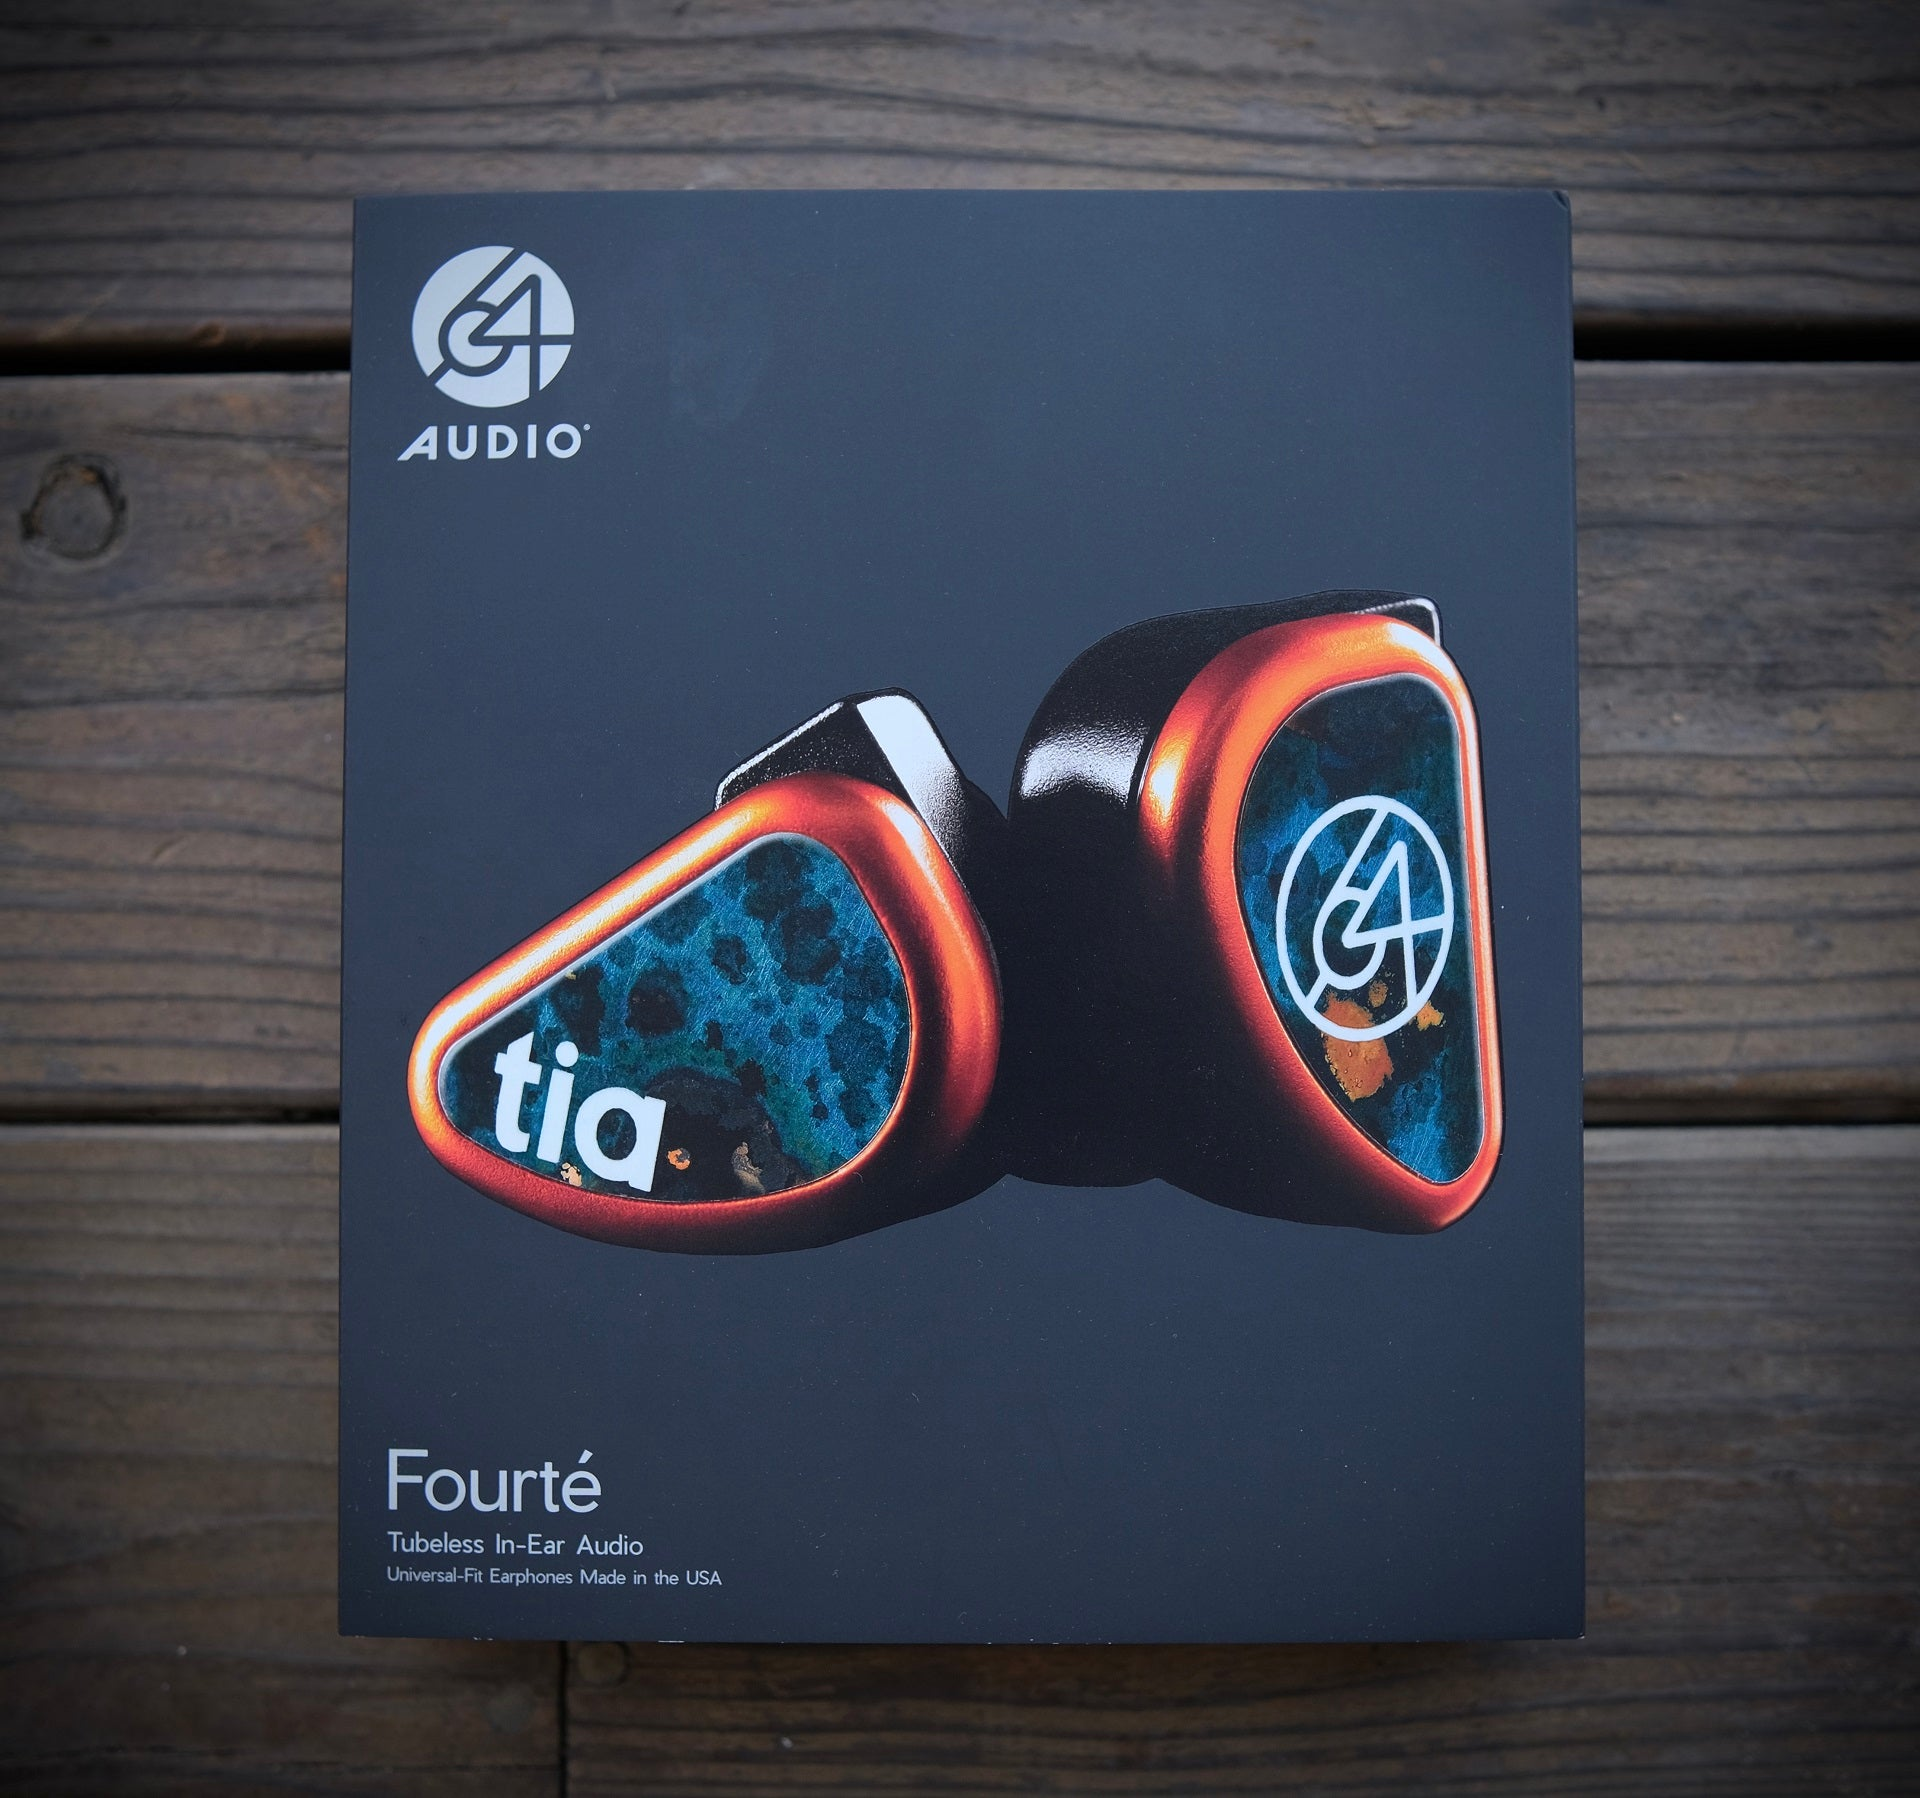 64 Audio Tia Fourte Review | Headphones.com